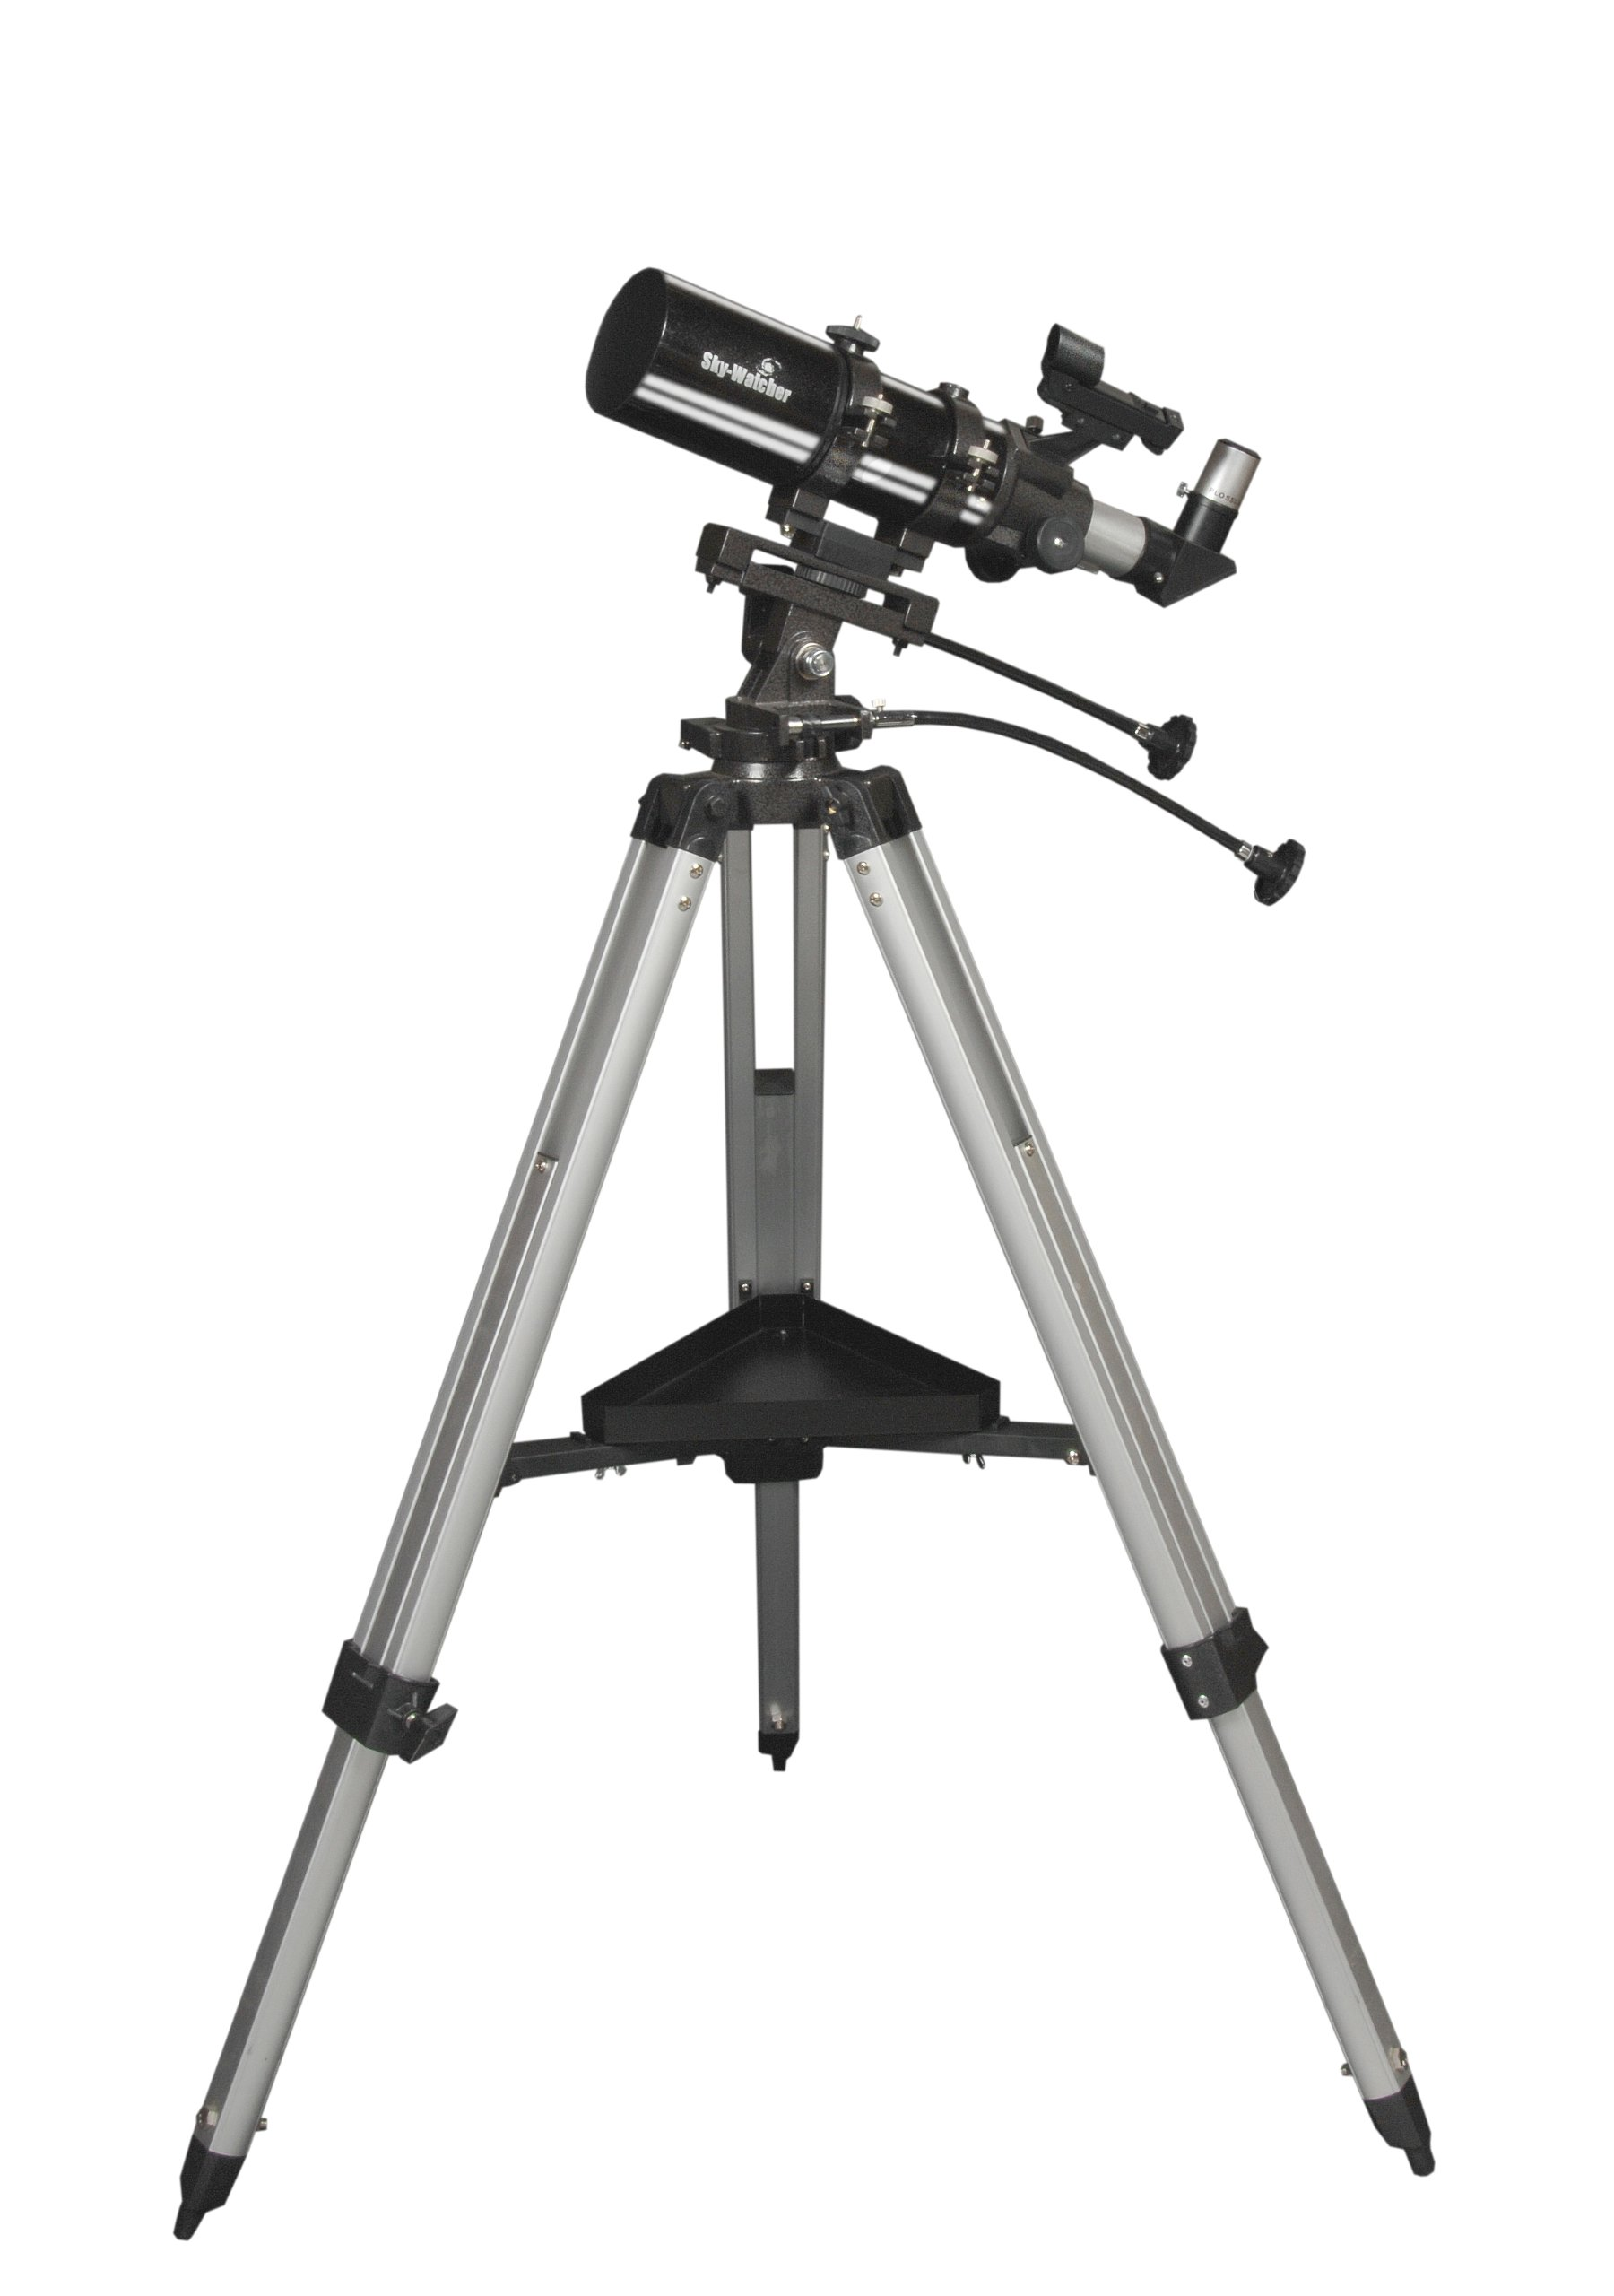 Skywatcher Startravel 80 (80/400) Telescope with Stable AZ3 Stand and Accessories